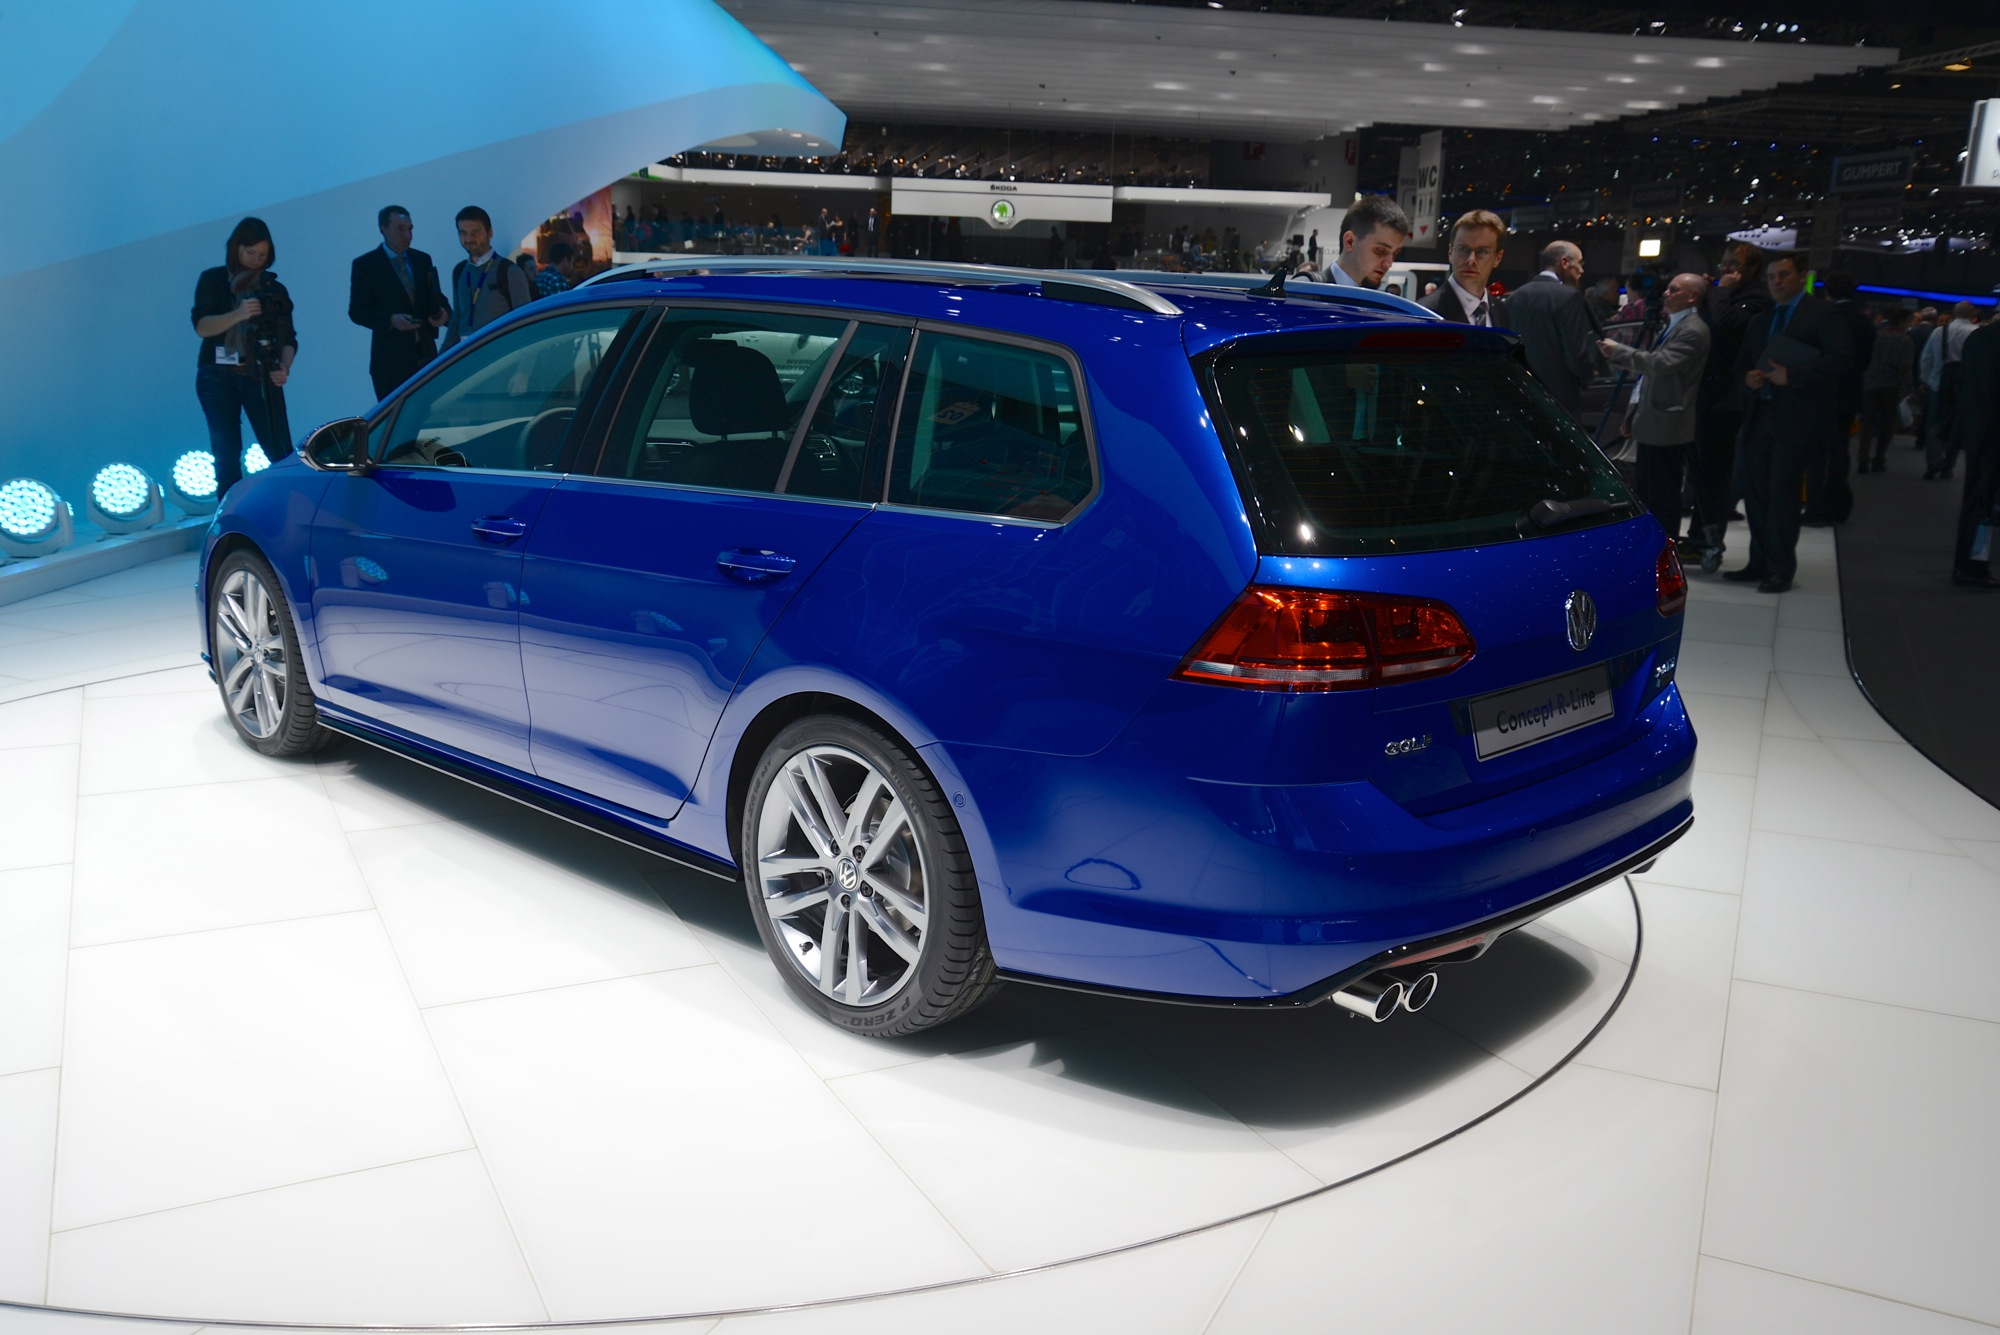 volkswagen-golf-7-estate-wagon-004